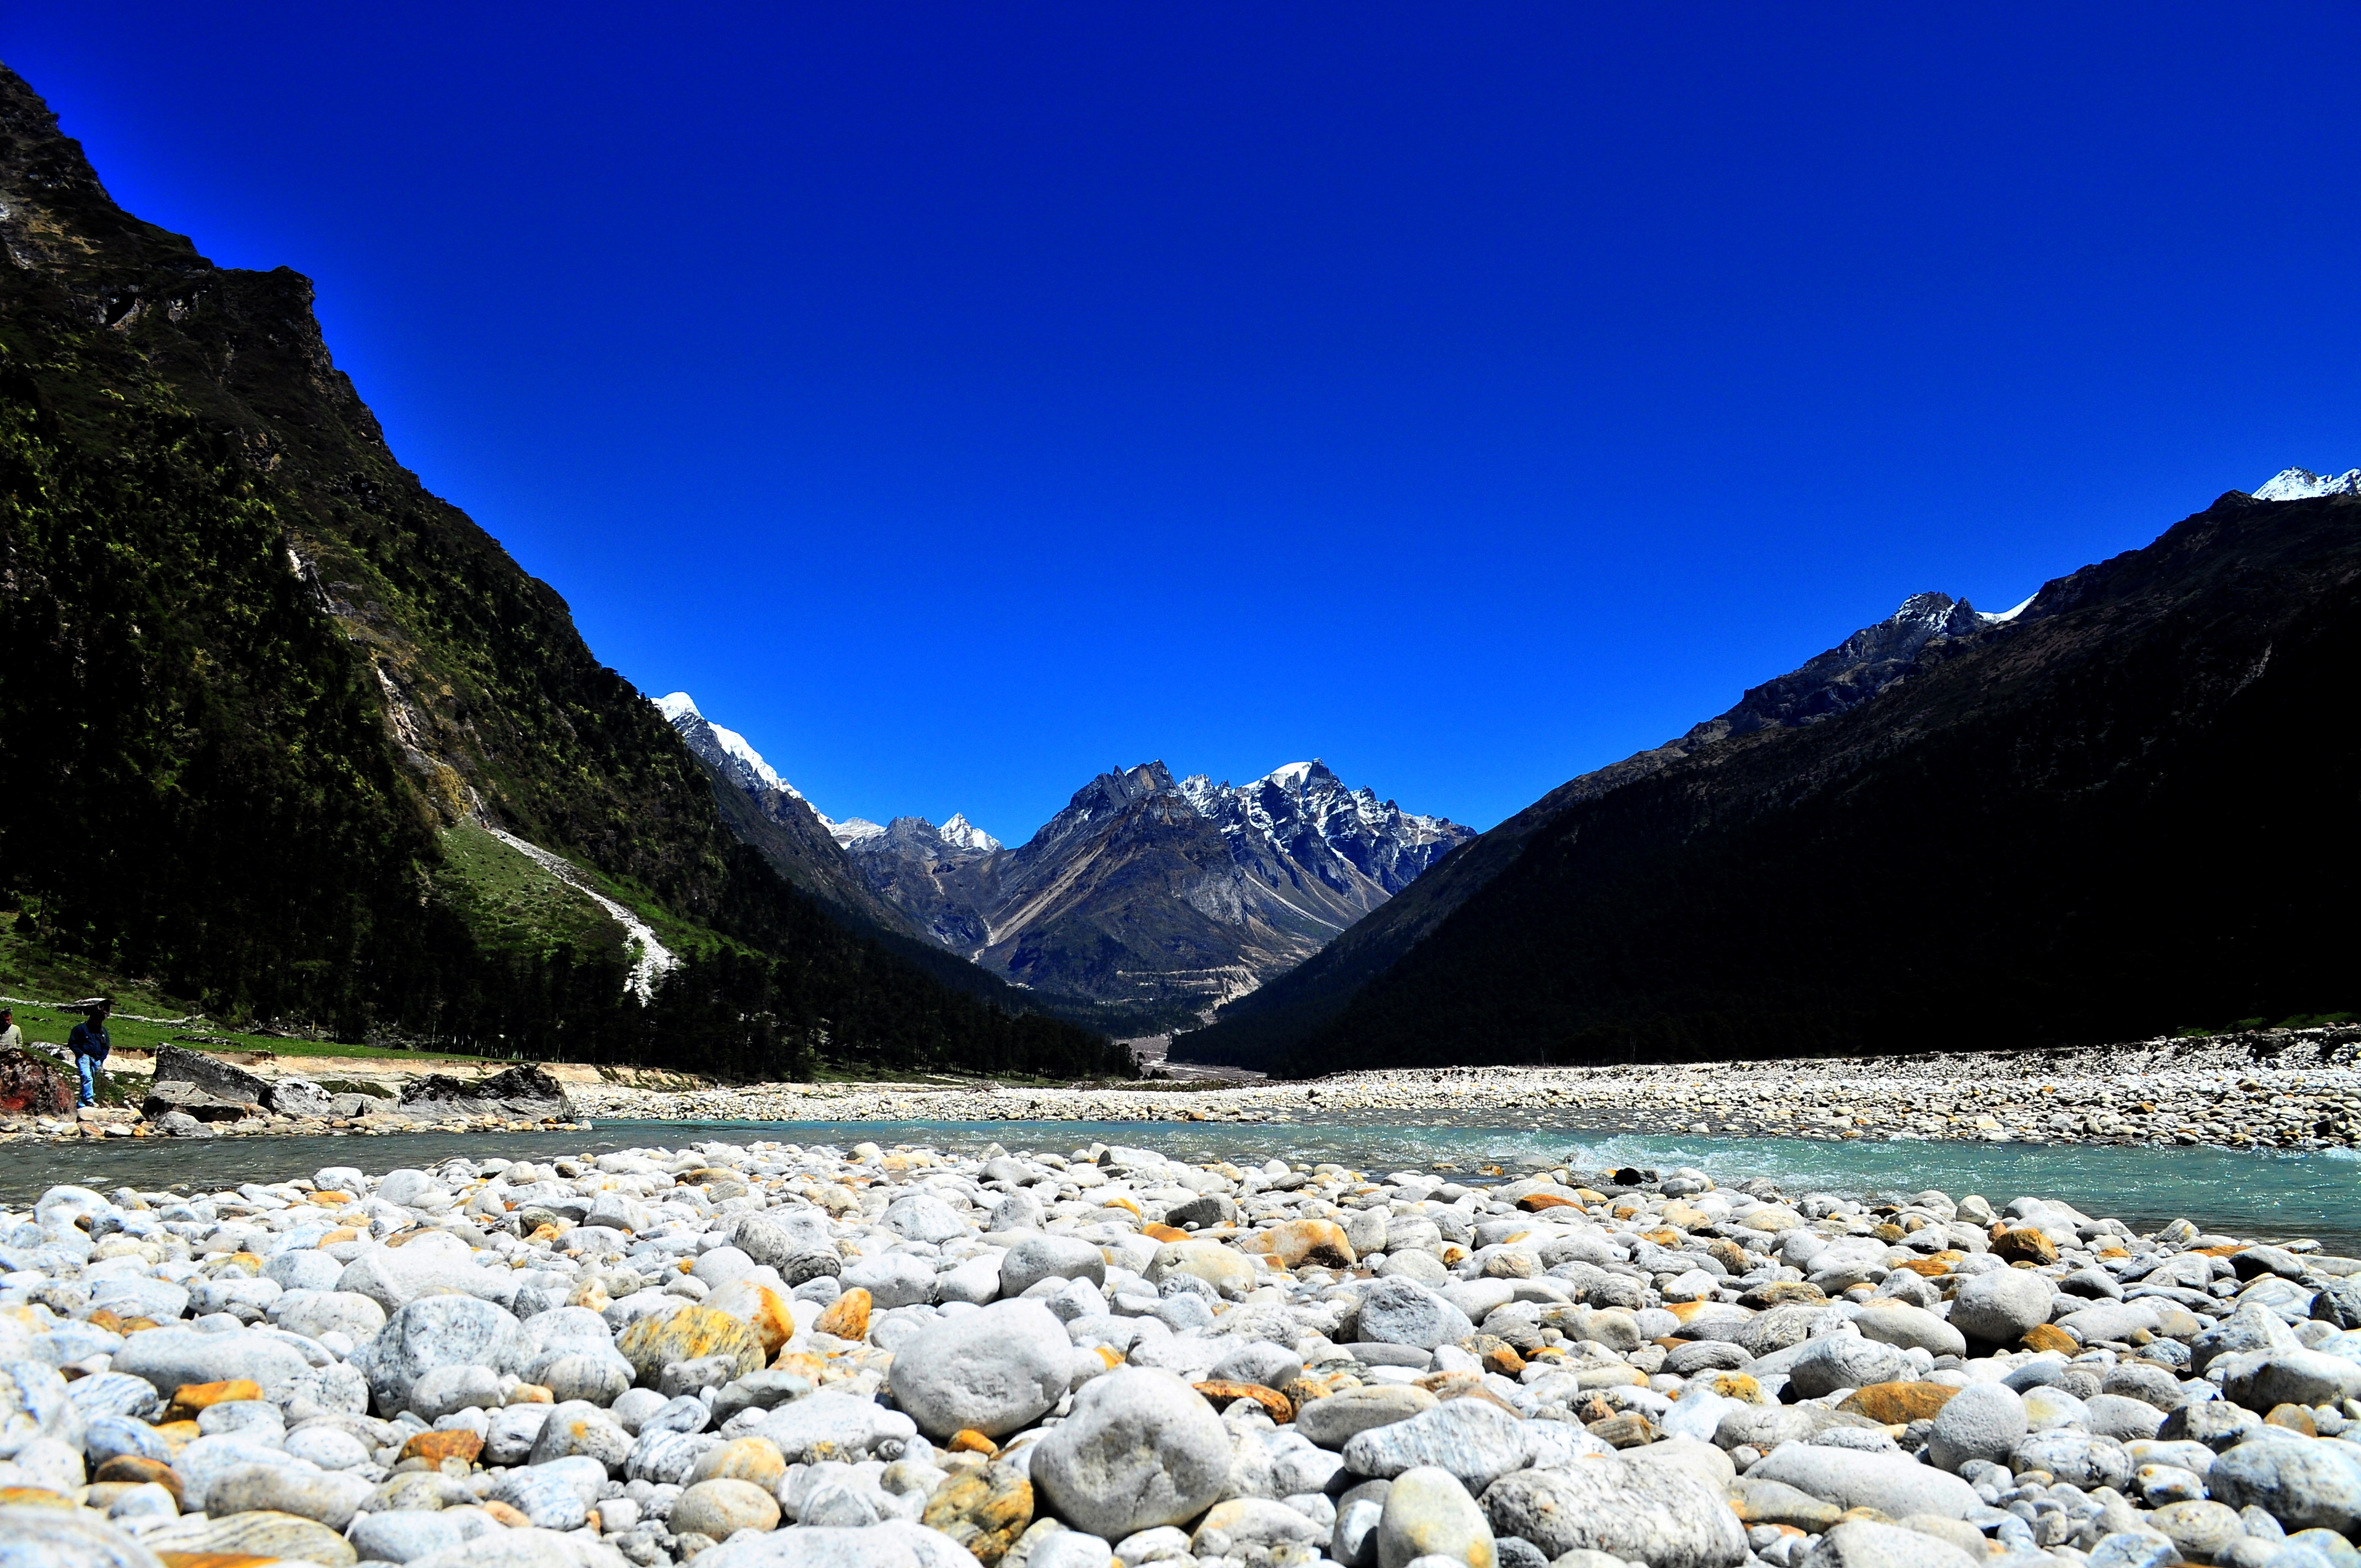 Lachung - Yumthang, Sikkim